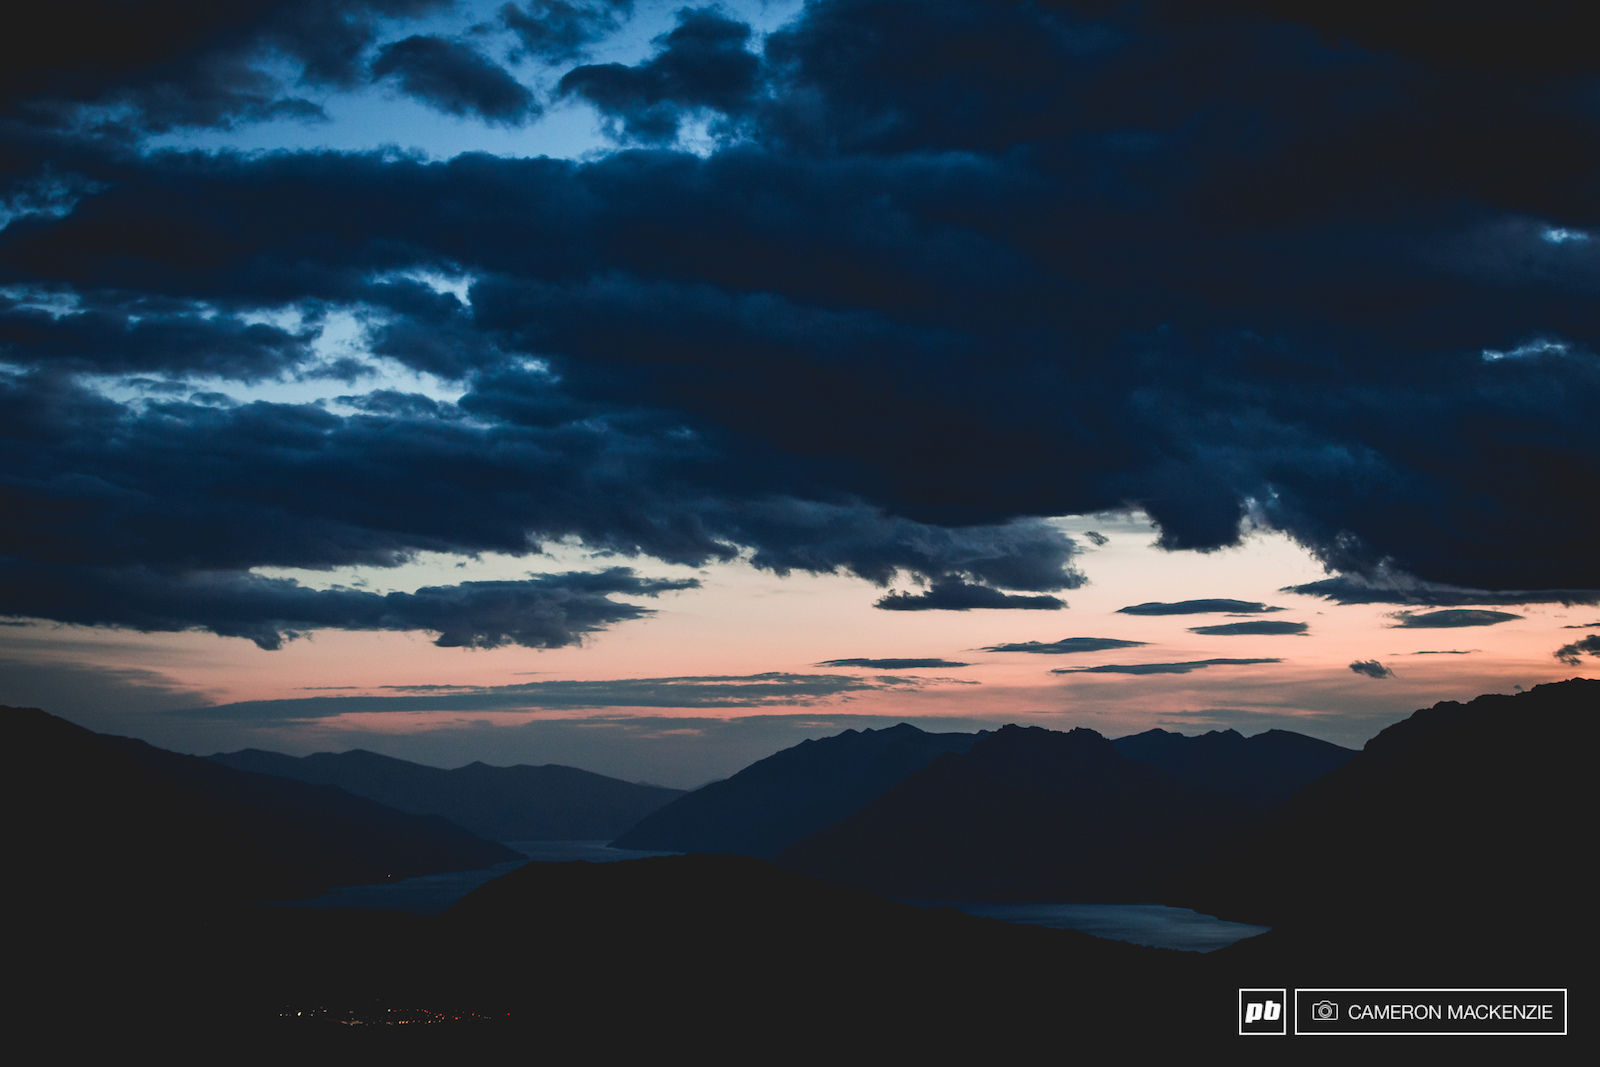 Last moments of golden hour above Coronet Peak